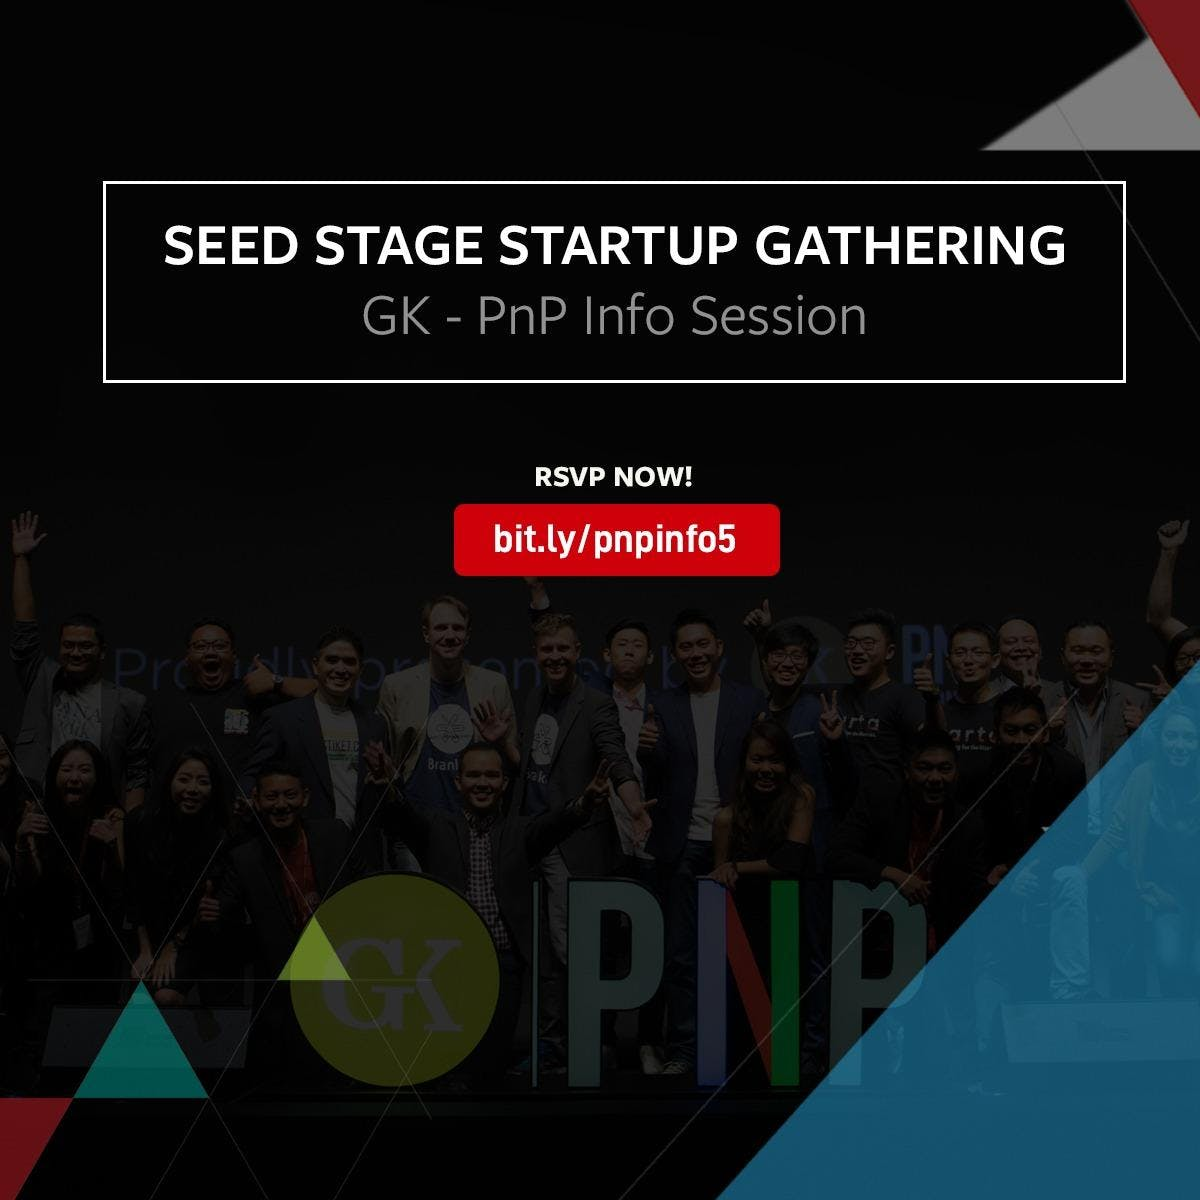 SEED - STAGE STARTUP GATHERING Lv 2